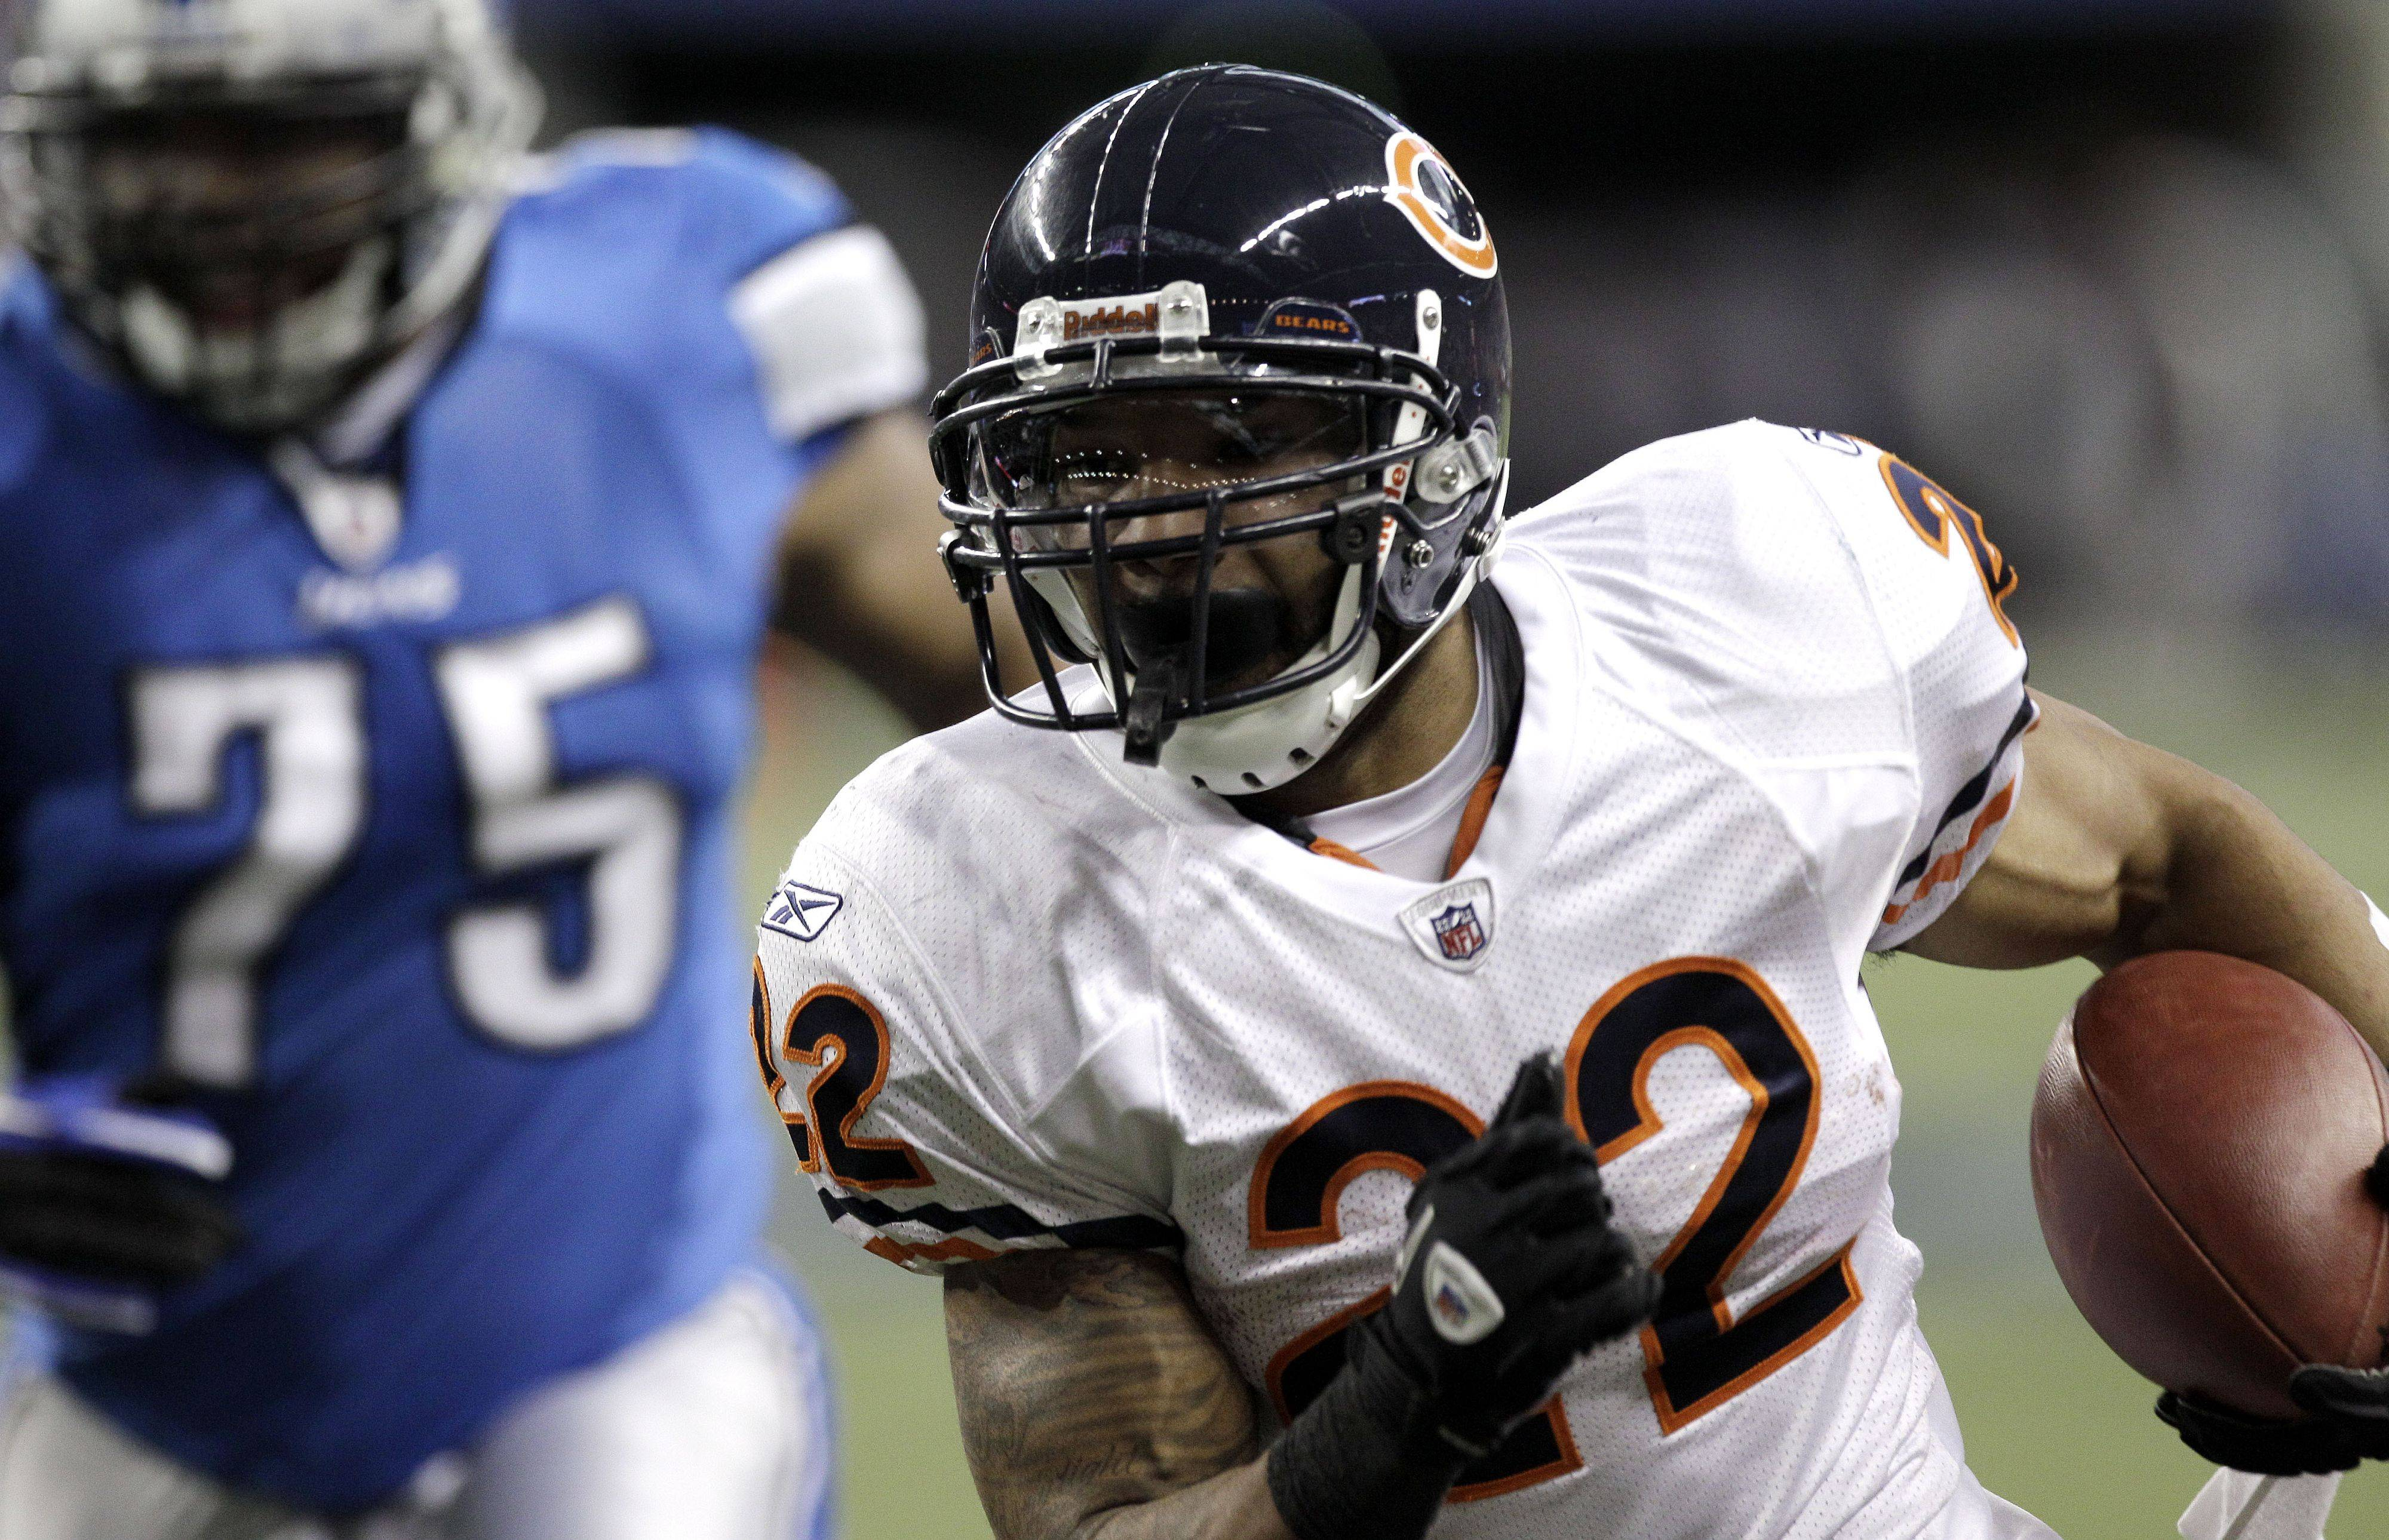 Chicago Bears running back Matt Forte scores on a 14-yard run against the Detroit Lions in the second quarter.